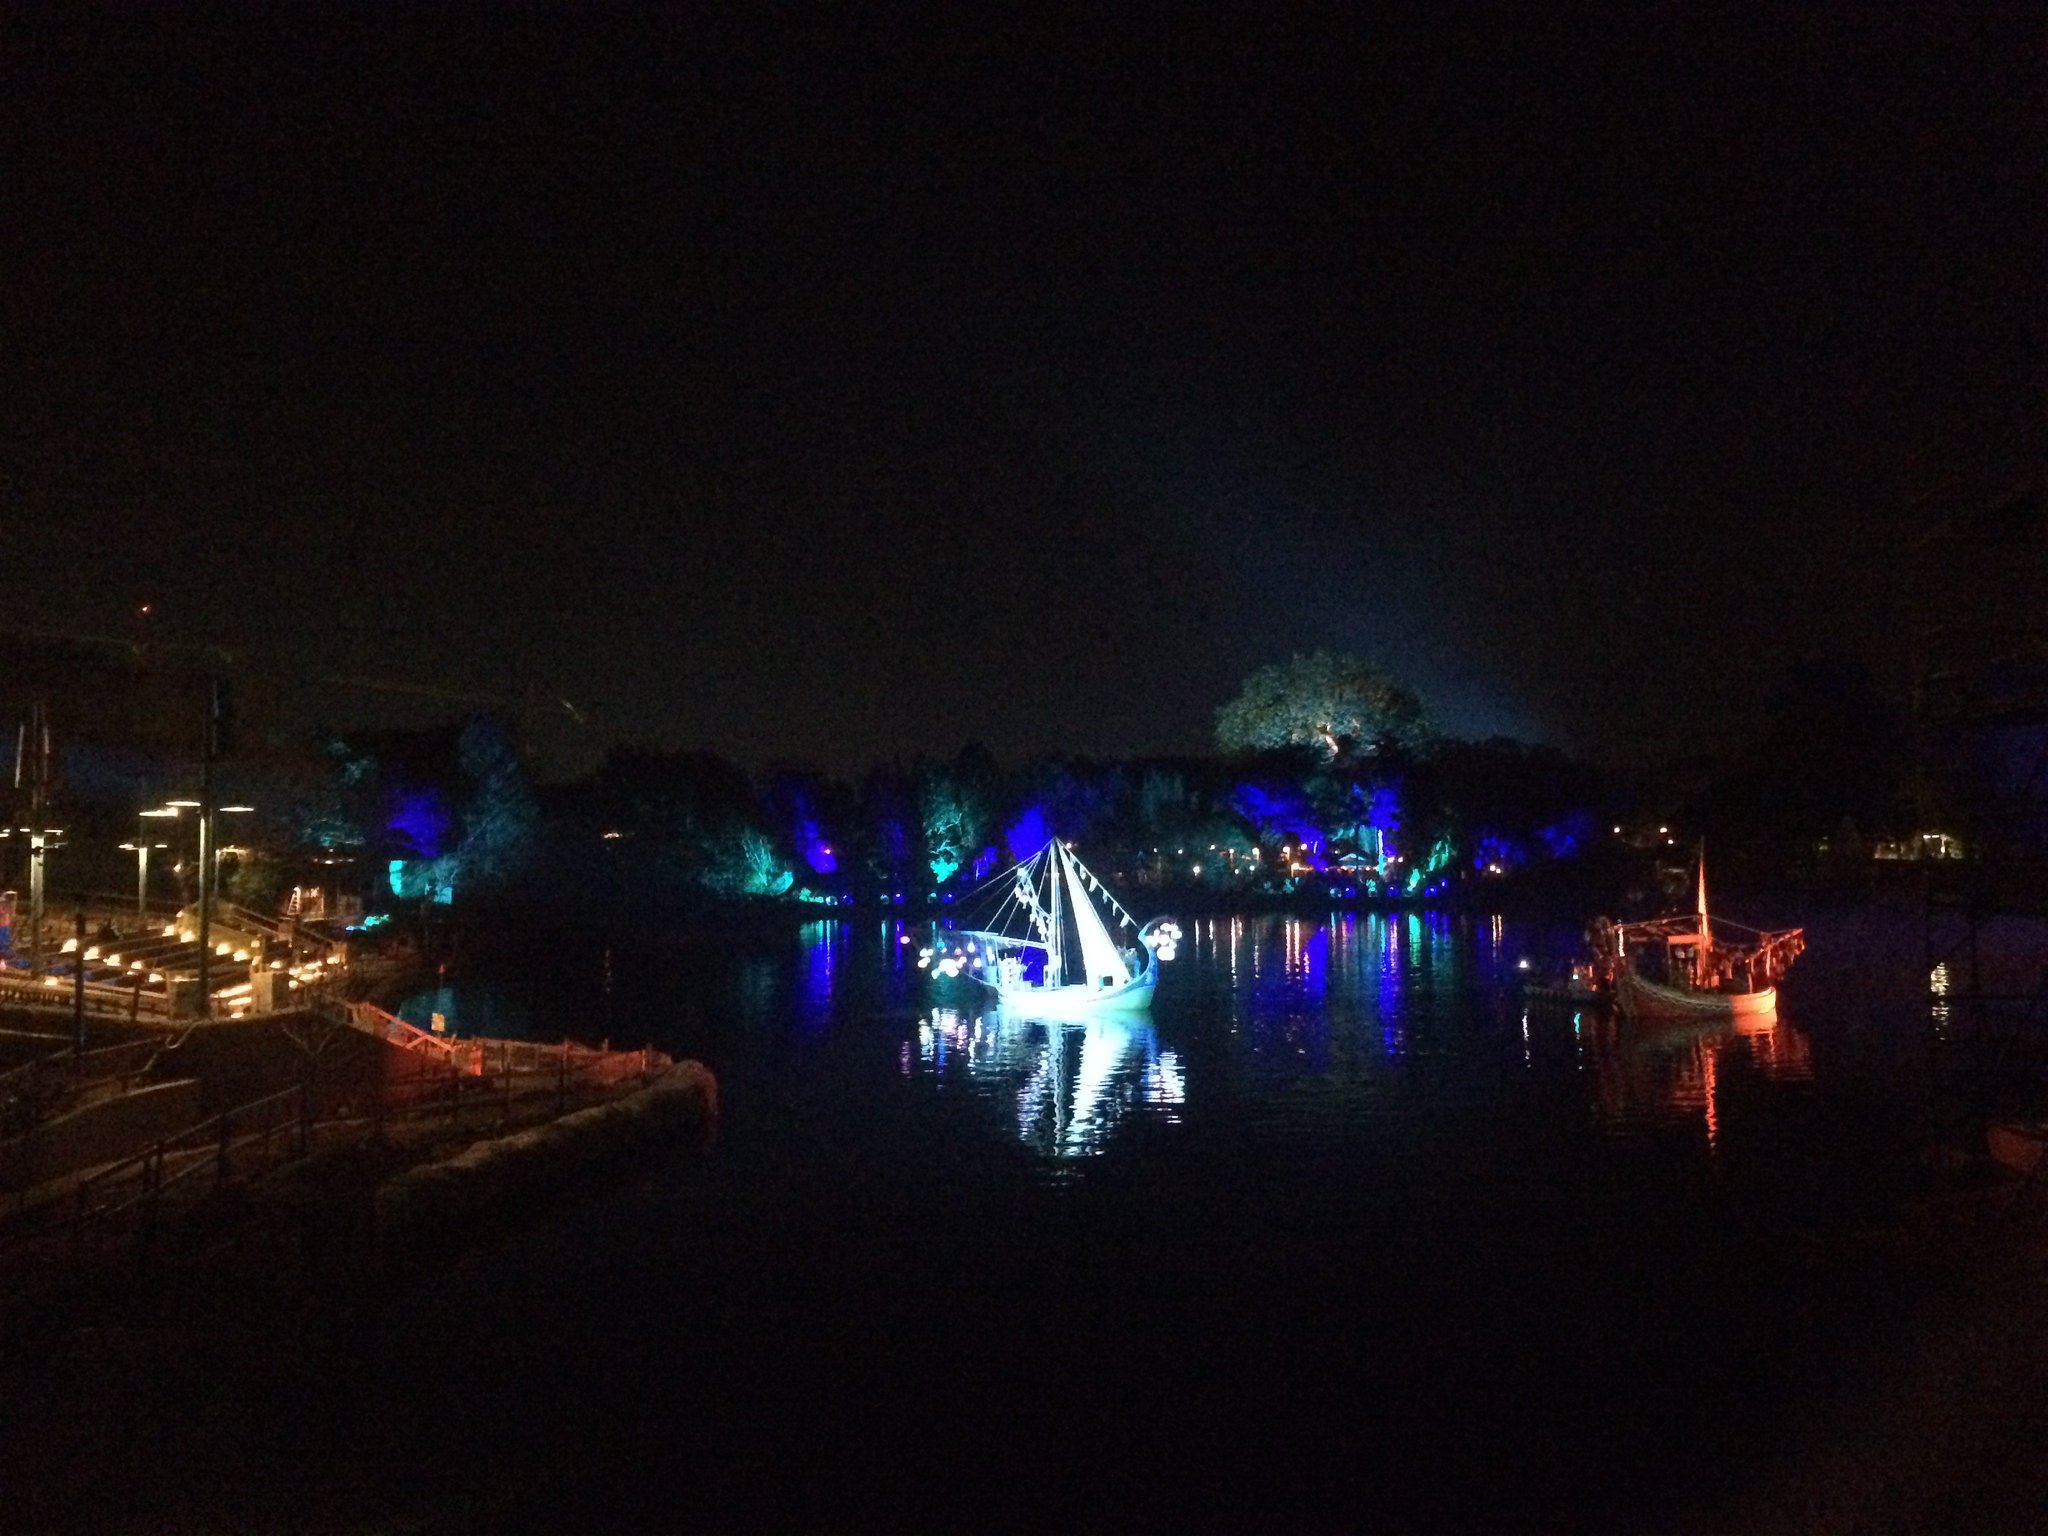 [Disney's Animal Kingdom] Nouveaux divertissements nocturnes: Rivers of Light, Tree of life Awakenings, The Jungle Book Alive with Magic ... - Page 5 CbdVERVUcAAziqt